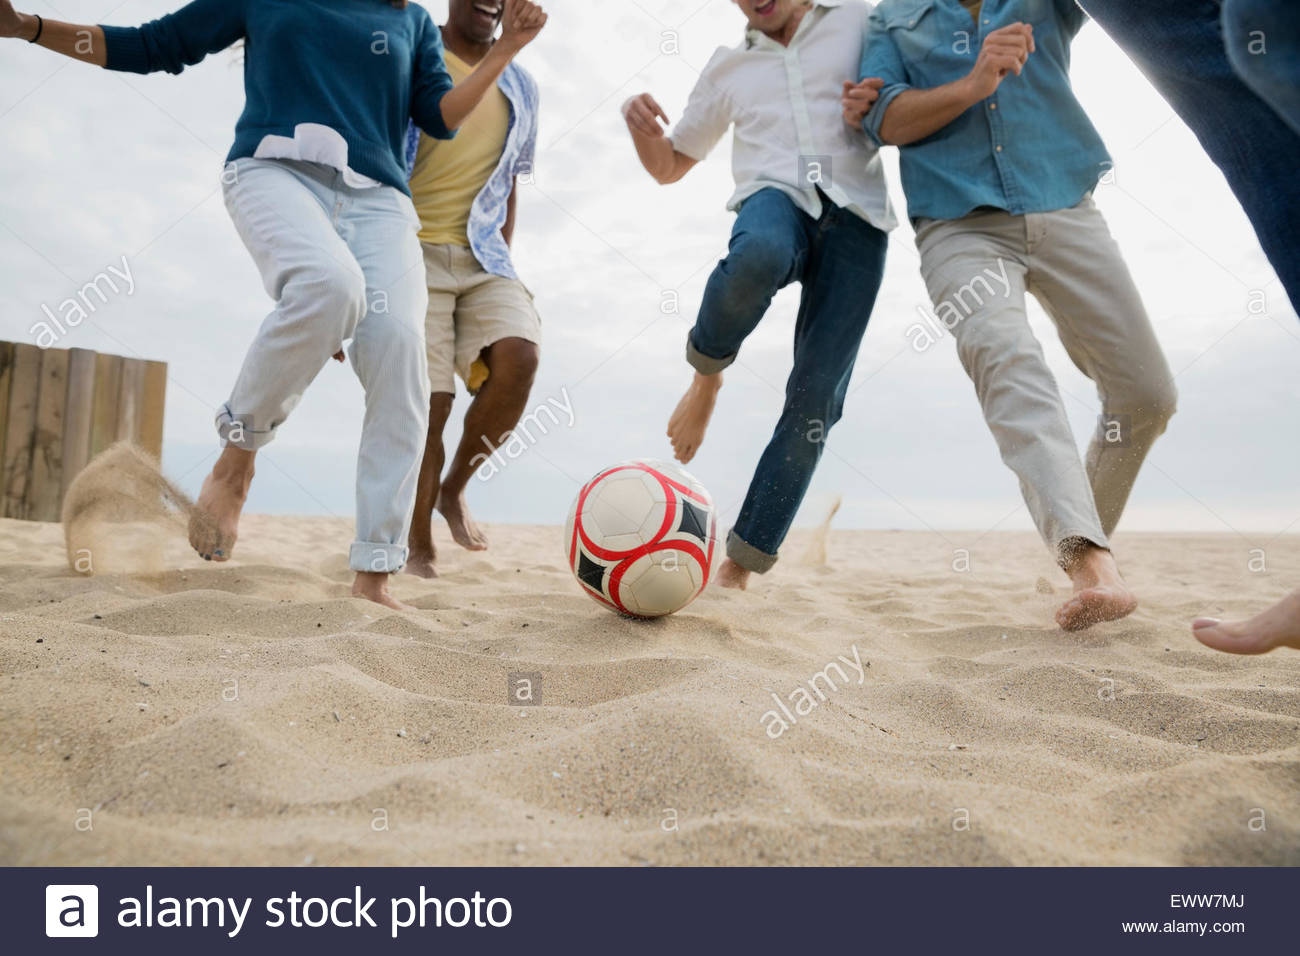 Friends playing soccer on beach - Stock Image